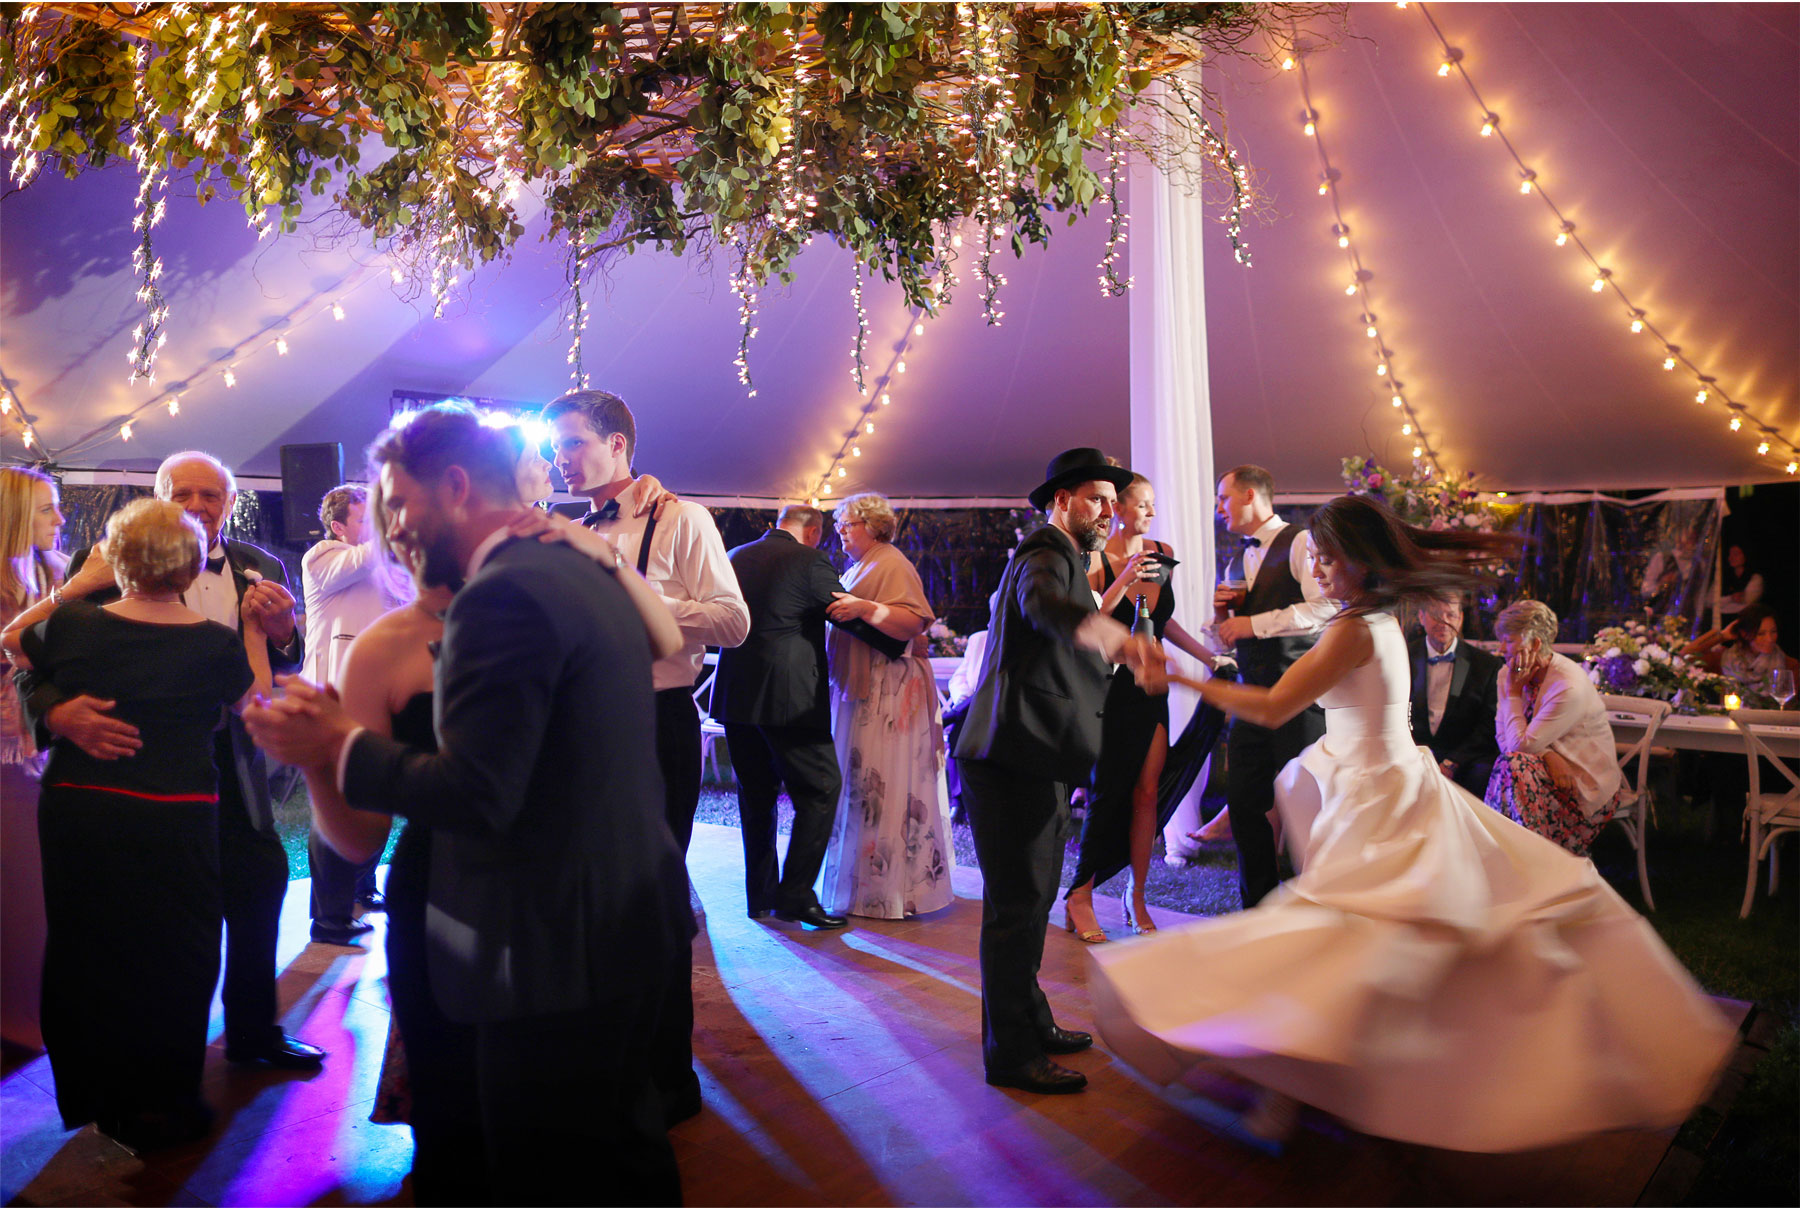 25-Vick-Photography-Wedding-Stouts-Island-Lodge-Wisconsin-Summer-Reception-Outdoor-Dancing-MiJa-and-Lucius.jpg